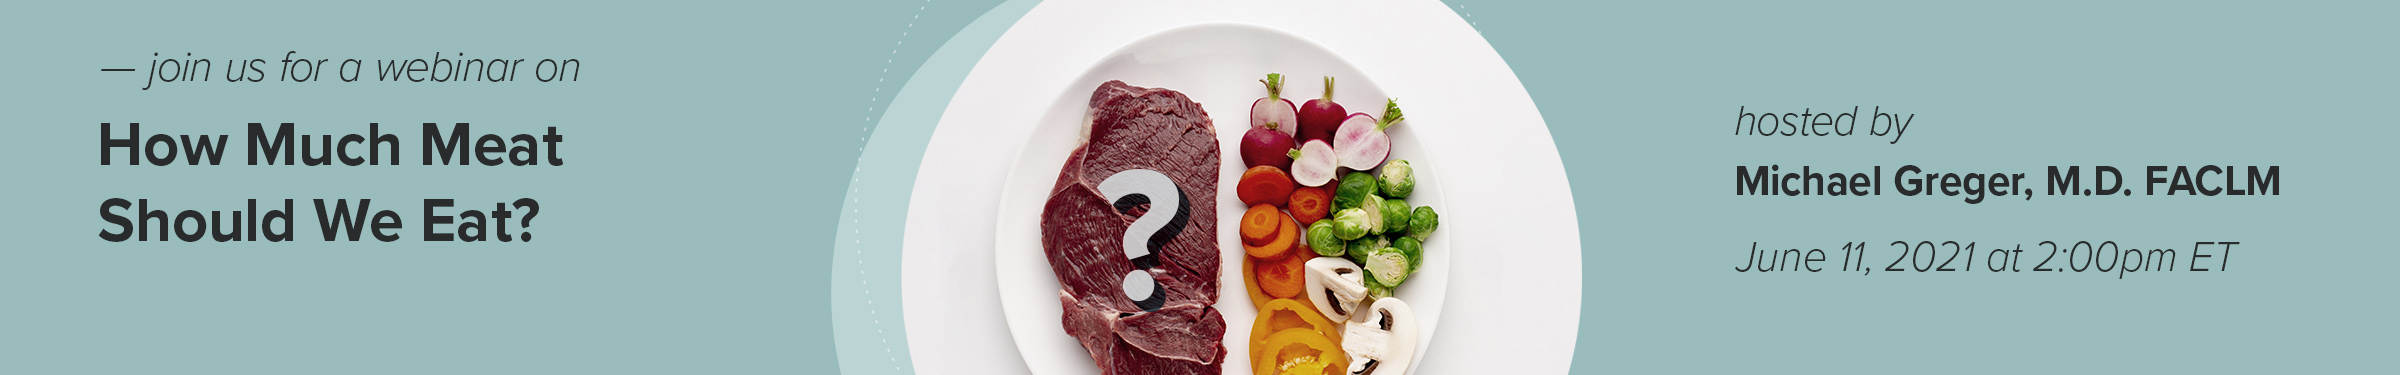 How Much Meat Should We Eat?